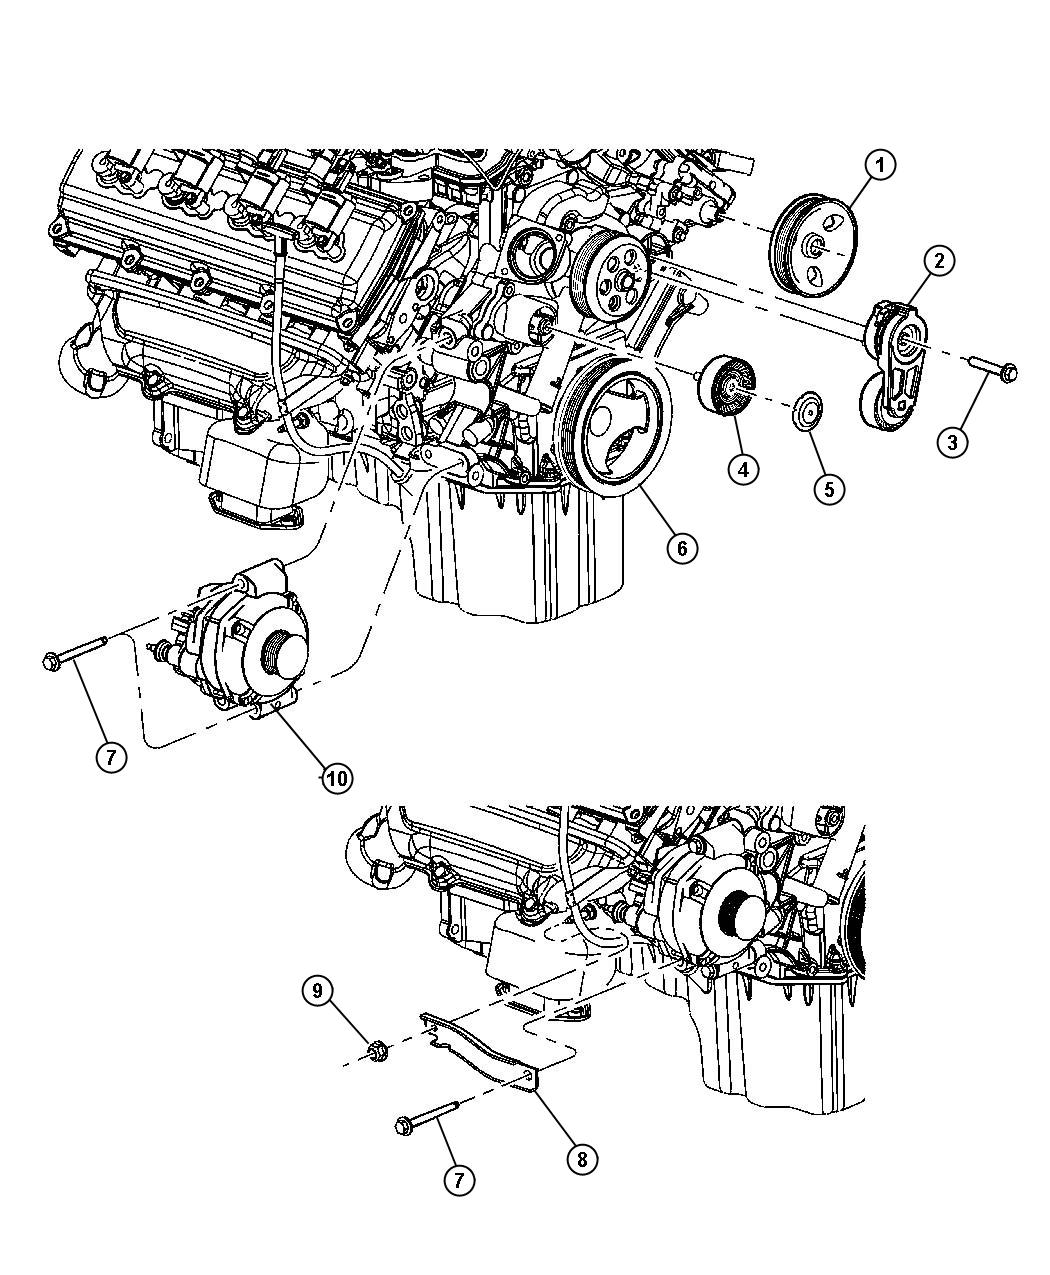 Volvo Fuel Pressure Diagram besides Sebp36810794 furthermore Free Wiring Diagram For 2000 Vw Beetle in addition Yamaha Golf Cart Differential Diagram besides W8 Engine Diagram. on 1 8t alternator wiring